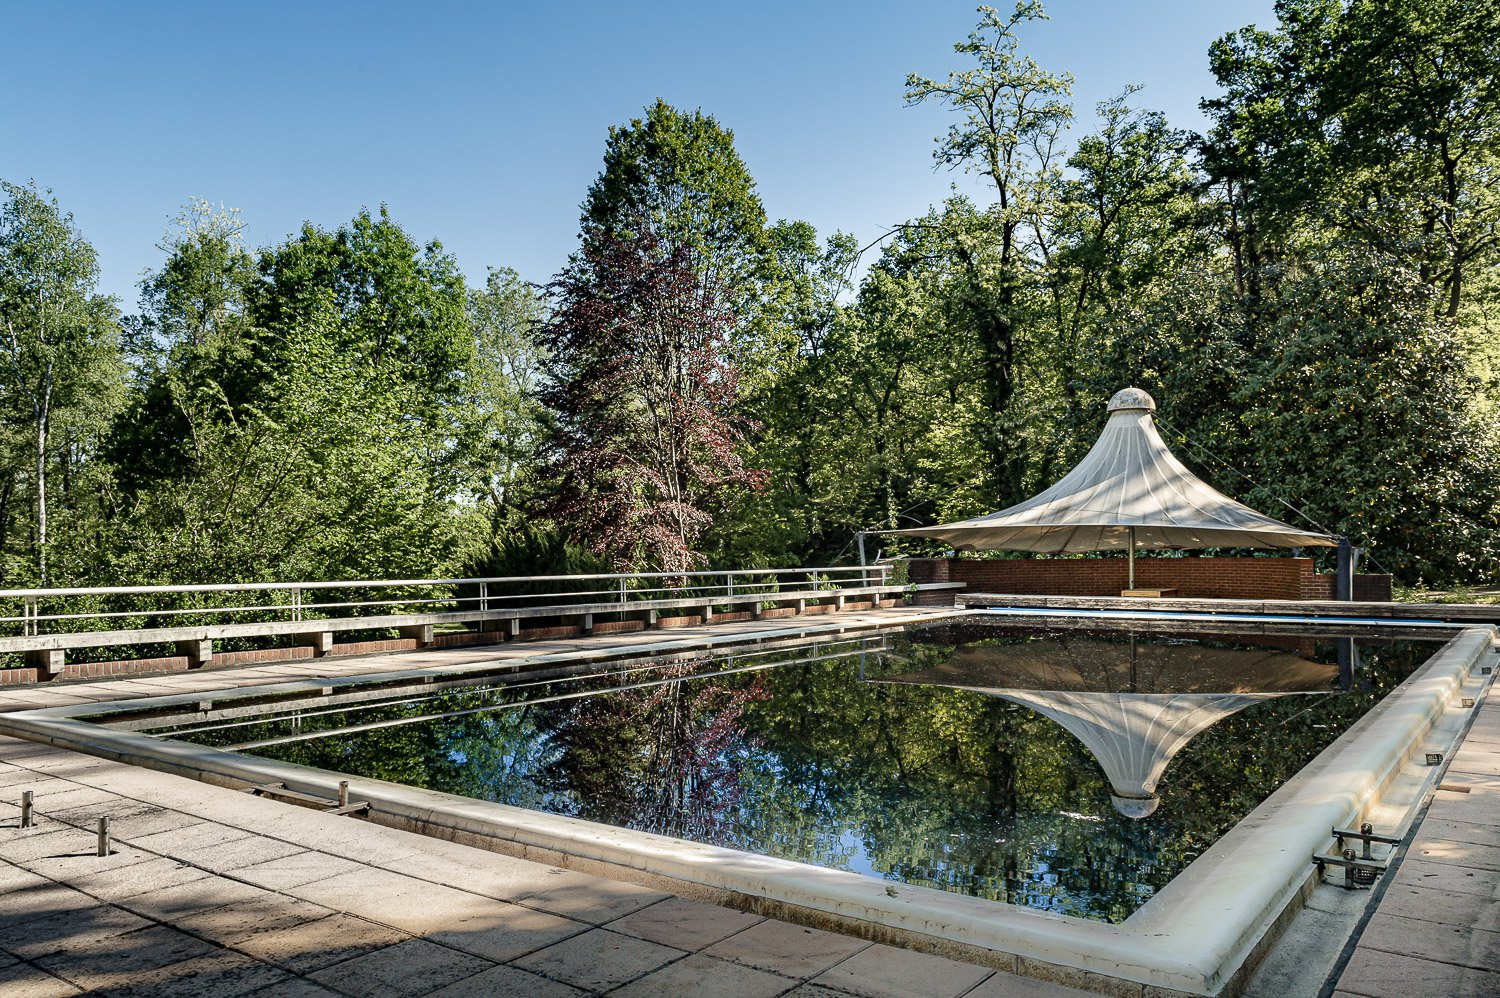 Property in a park in Borgo Ticino, near Lake Maggiore - swimming pool